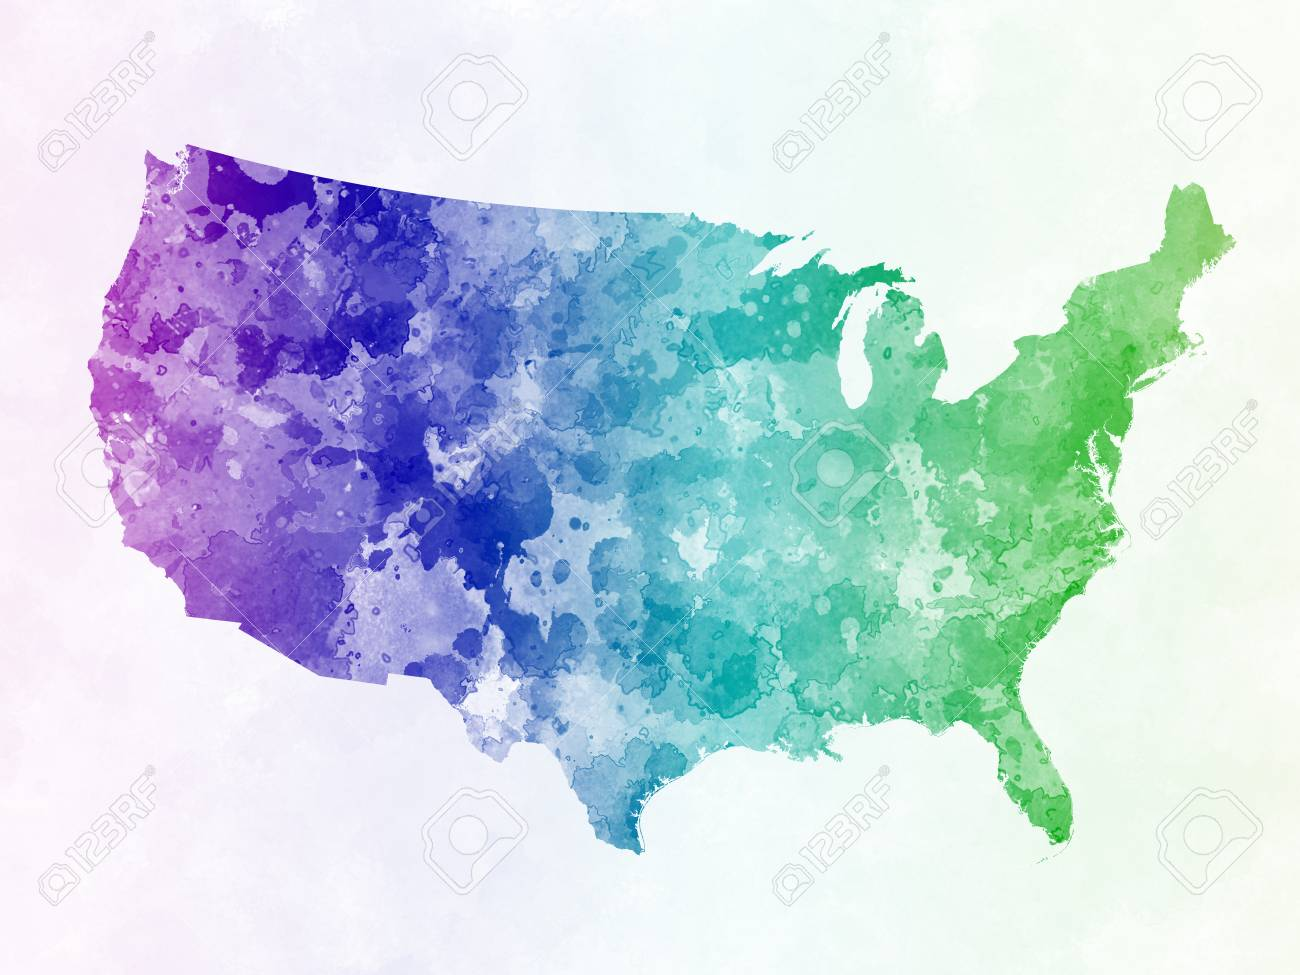 USA Map In Watercolor Painting Abstract Splatters Stock Photo